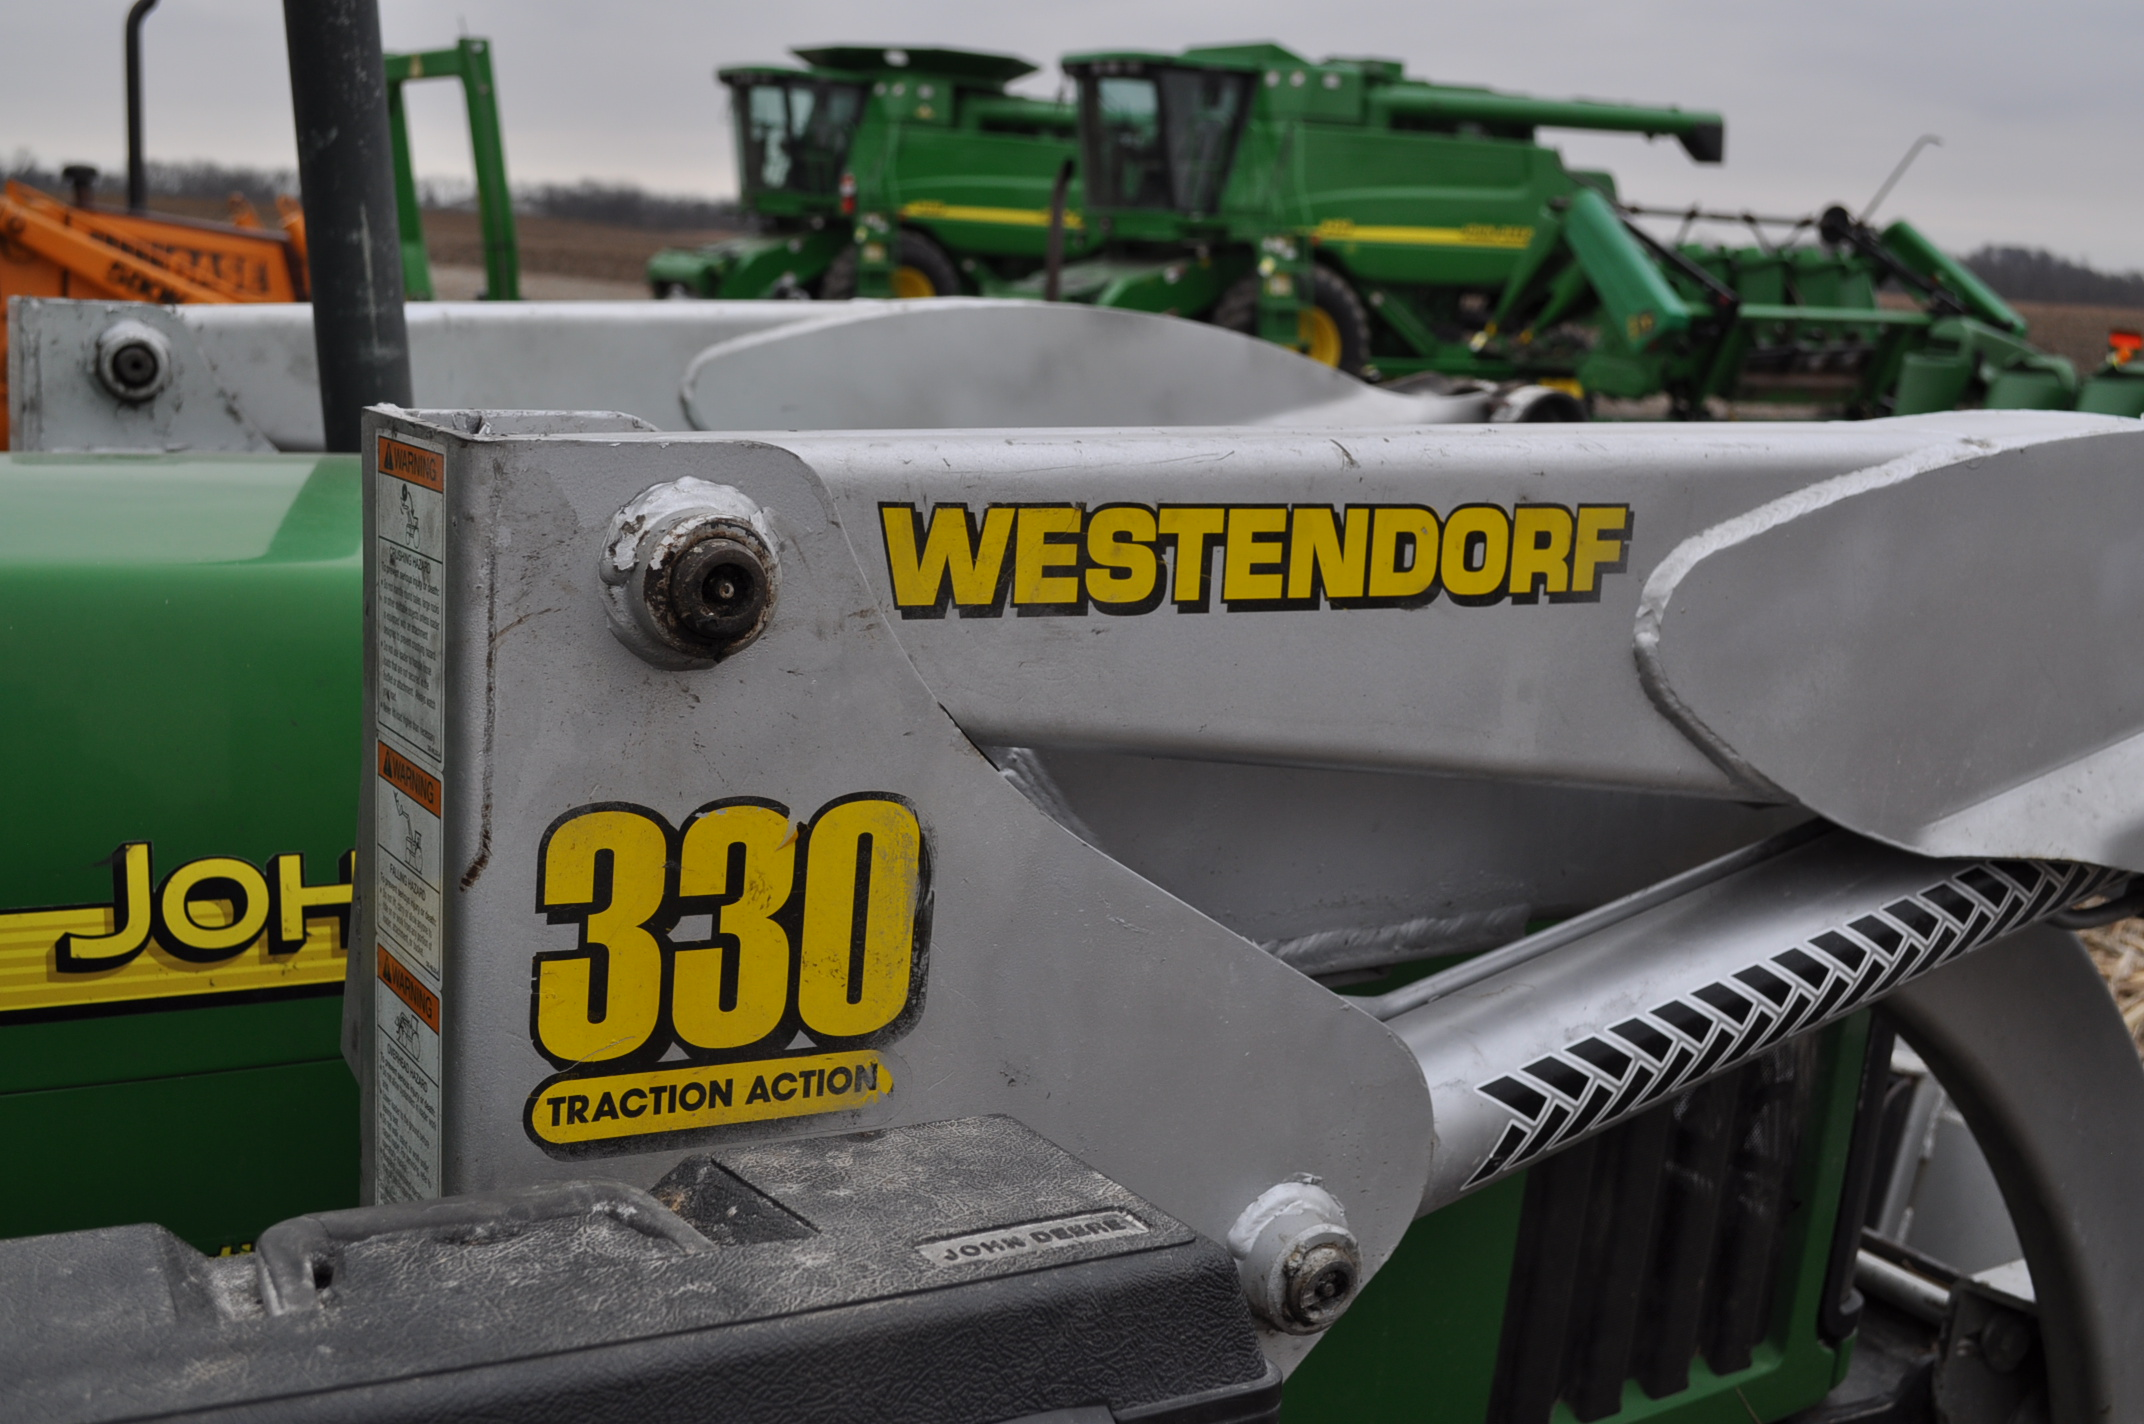 John Deere 5520 utility tractor, MFWD, 18.4 R 30 rear, 12.4-24 front, rear wheel wts, 2 hyd remotes, - Image 17 of 26